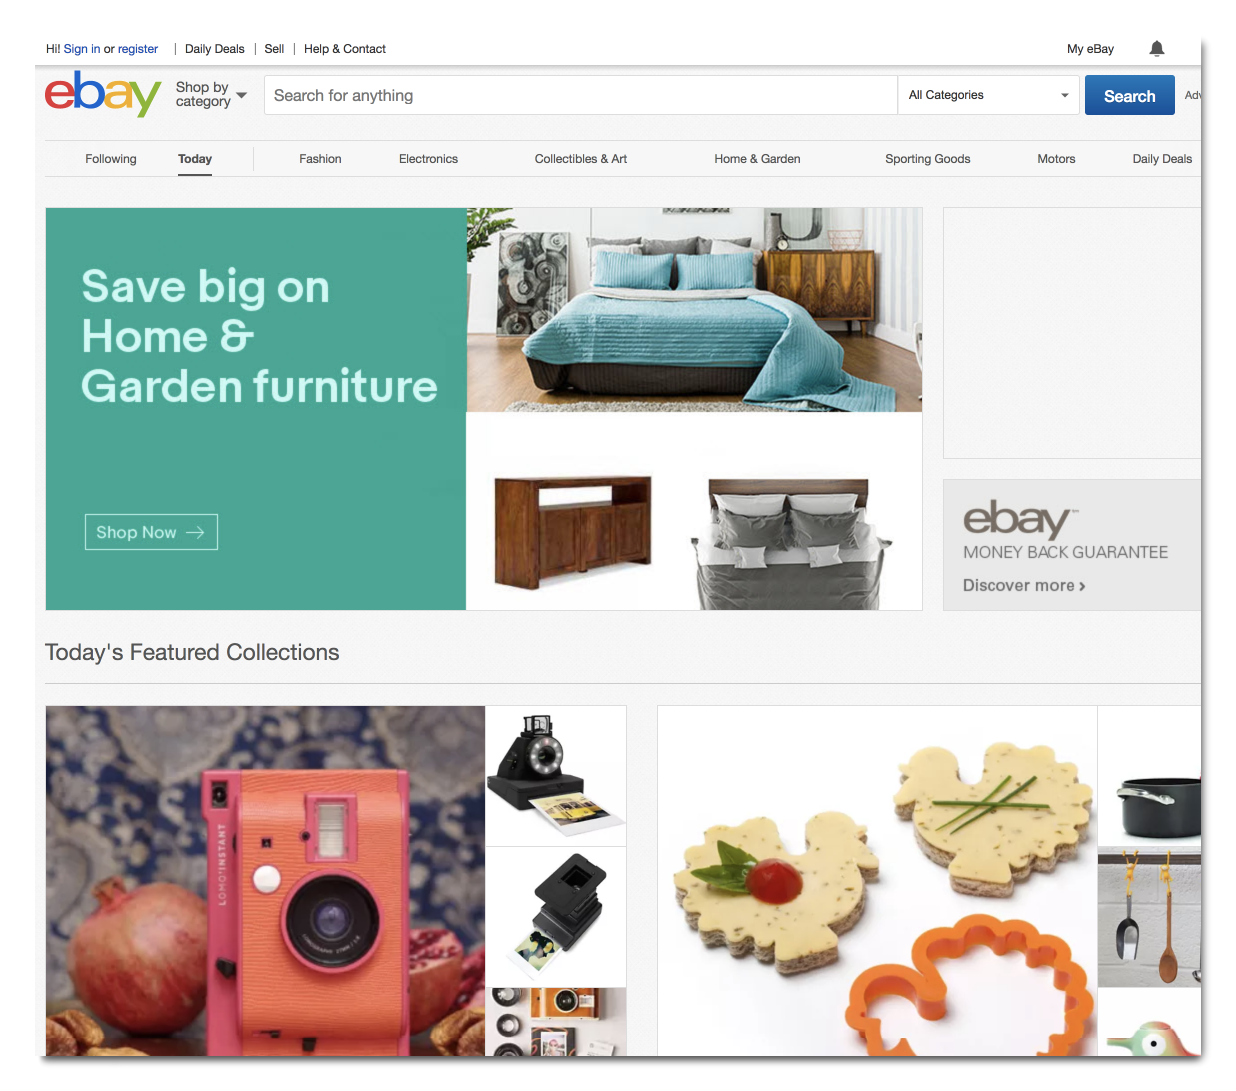 multichannel selling on eBay